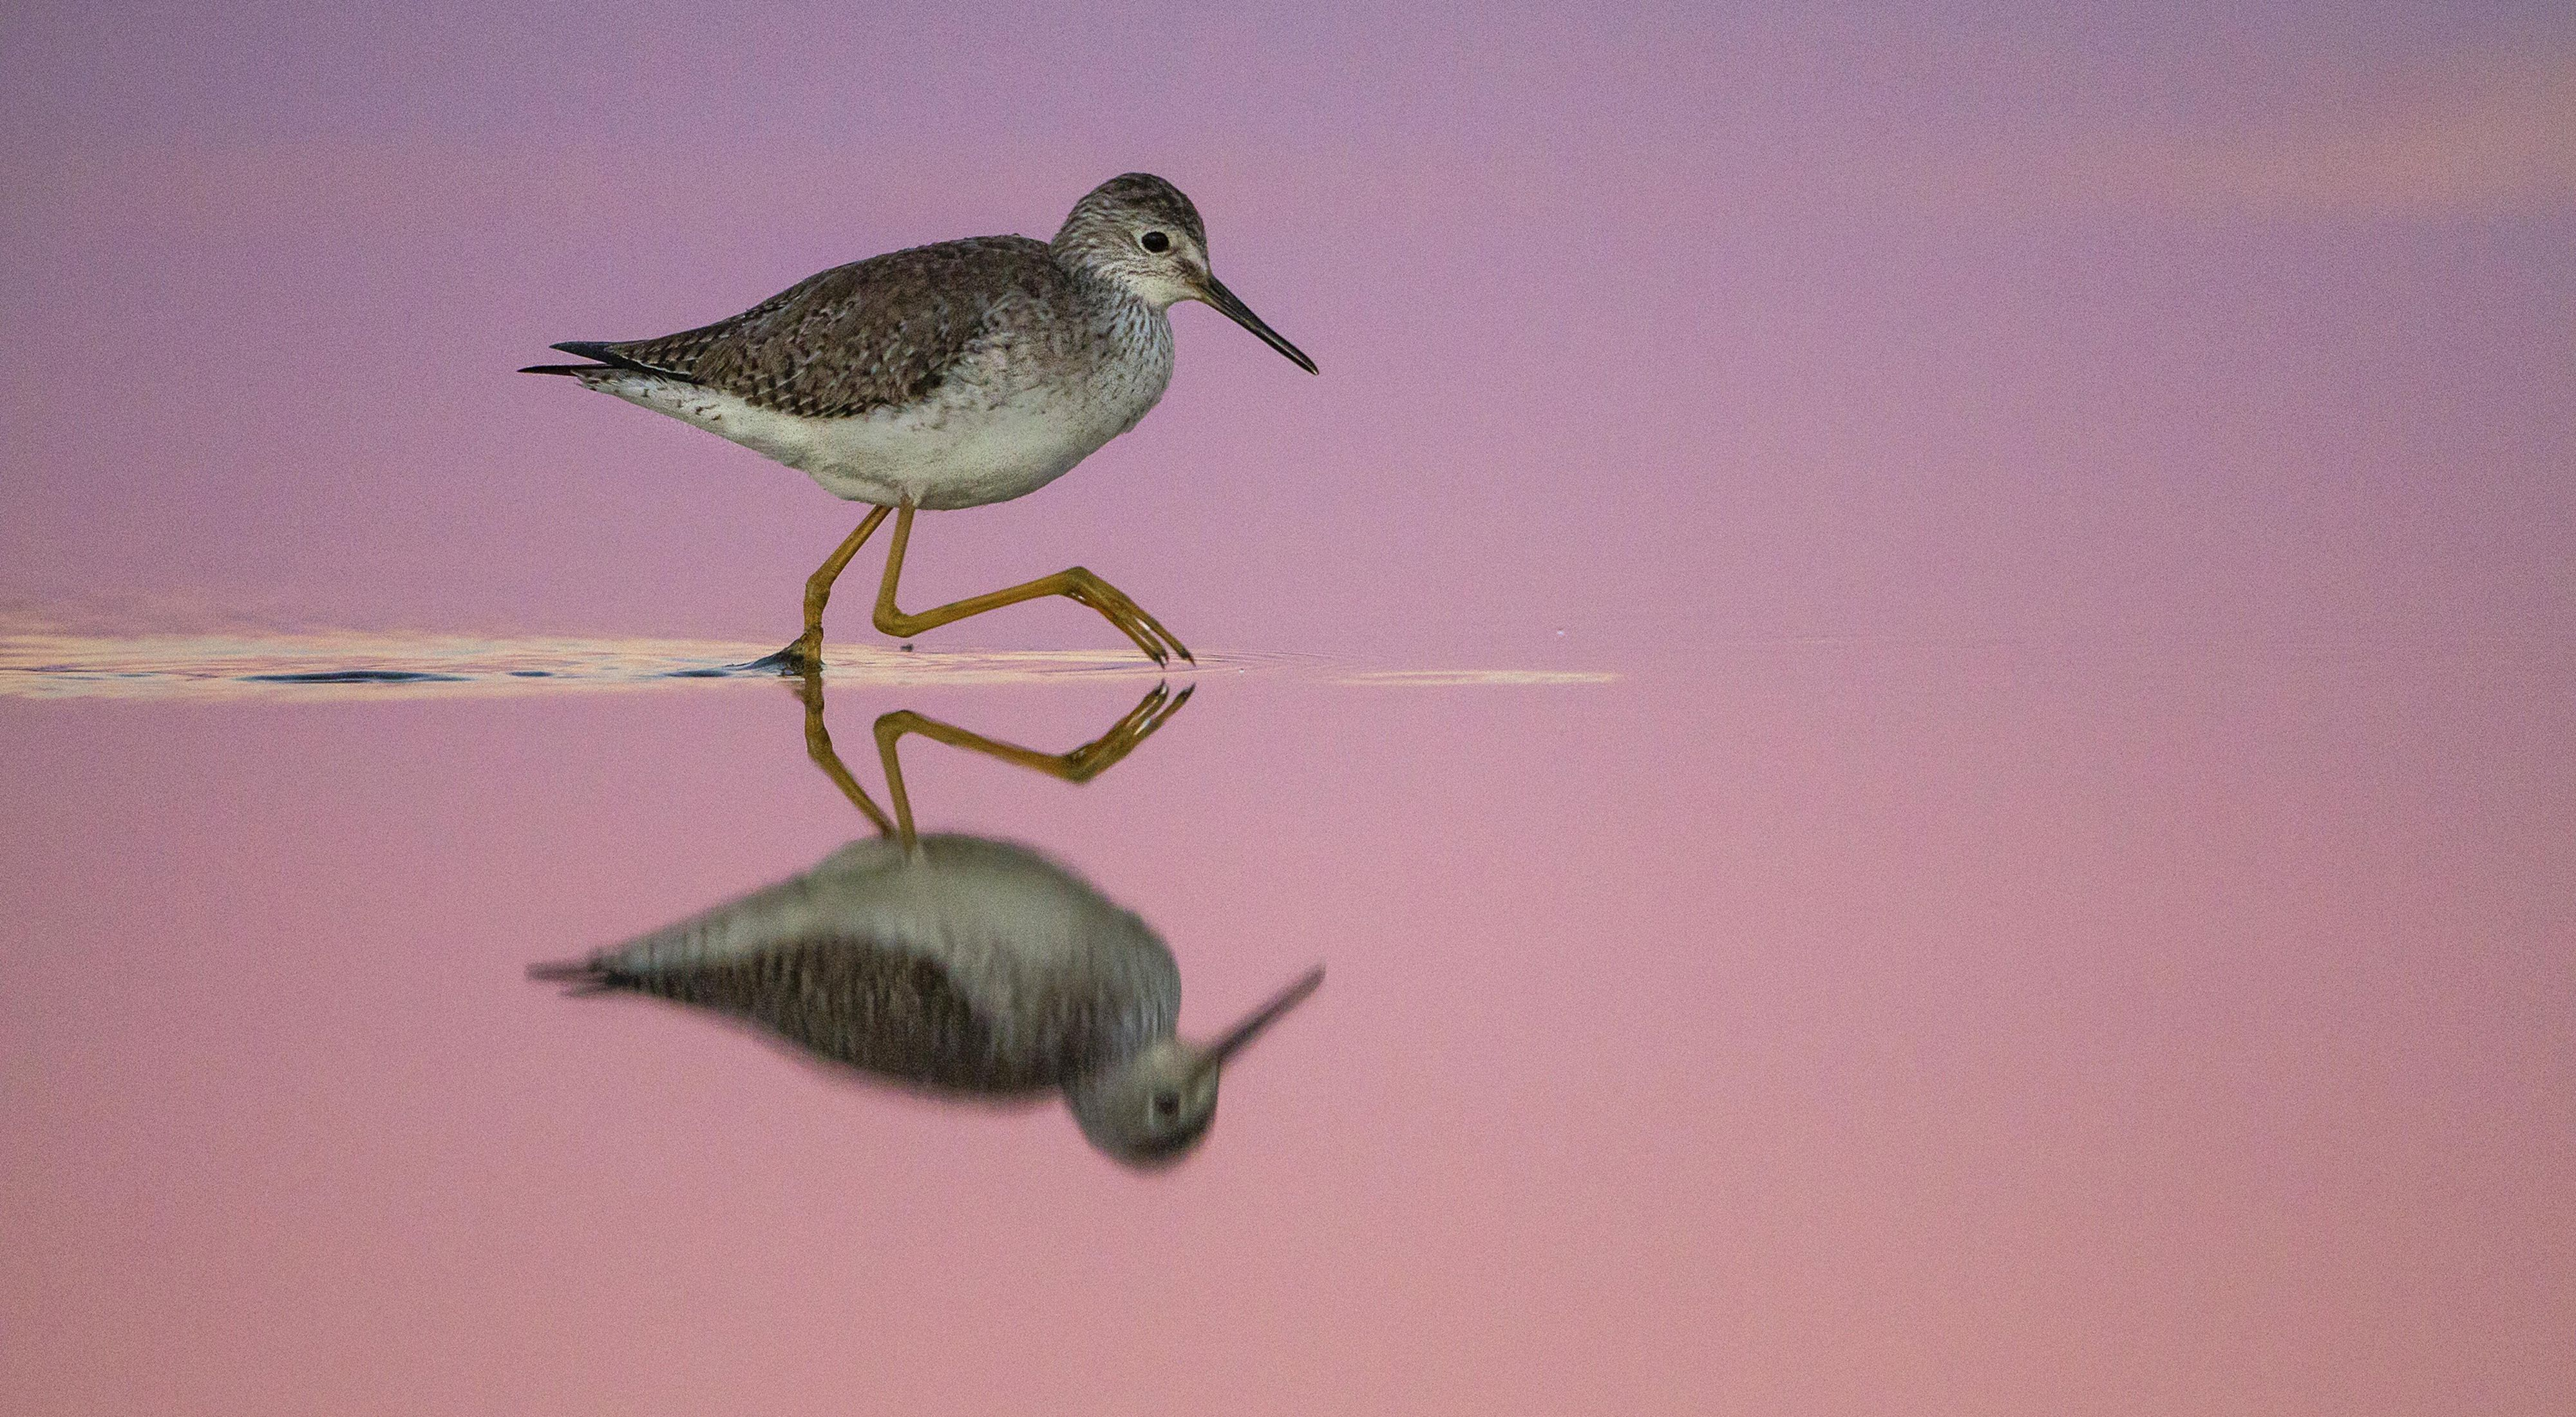 a small bird walks through water reflecting the pink colors of sunrise